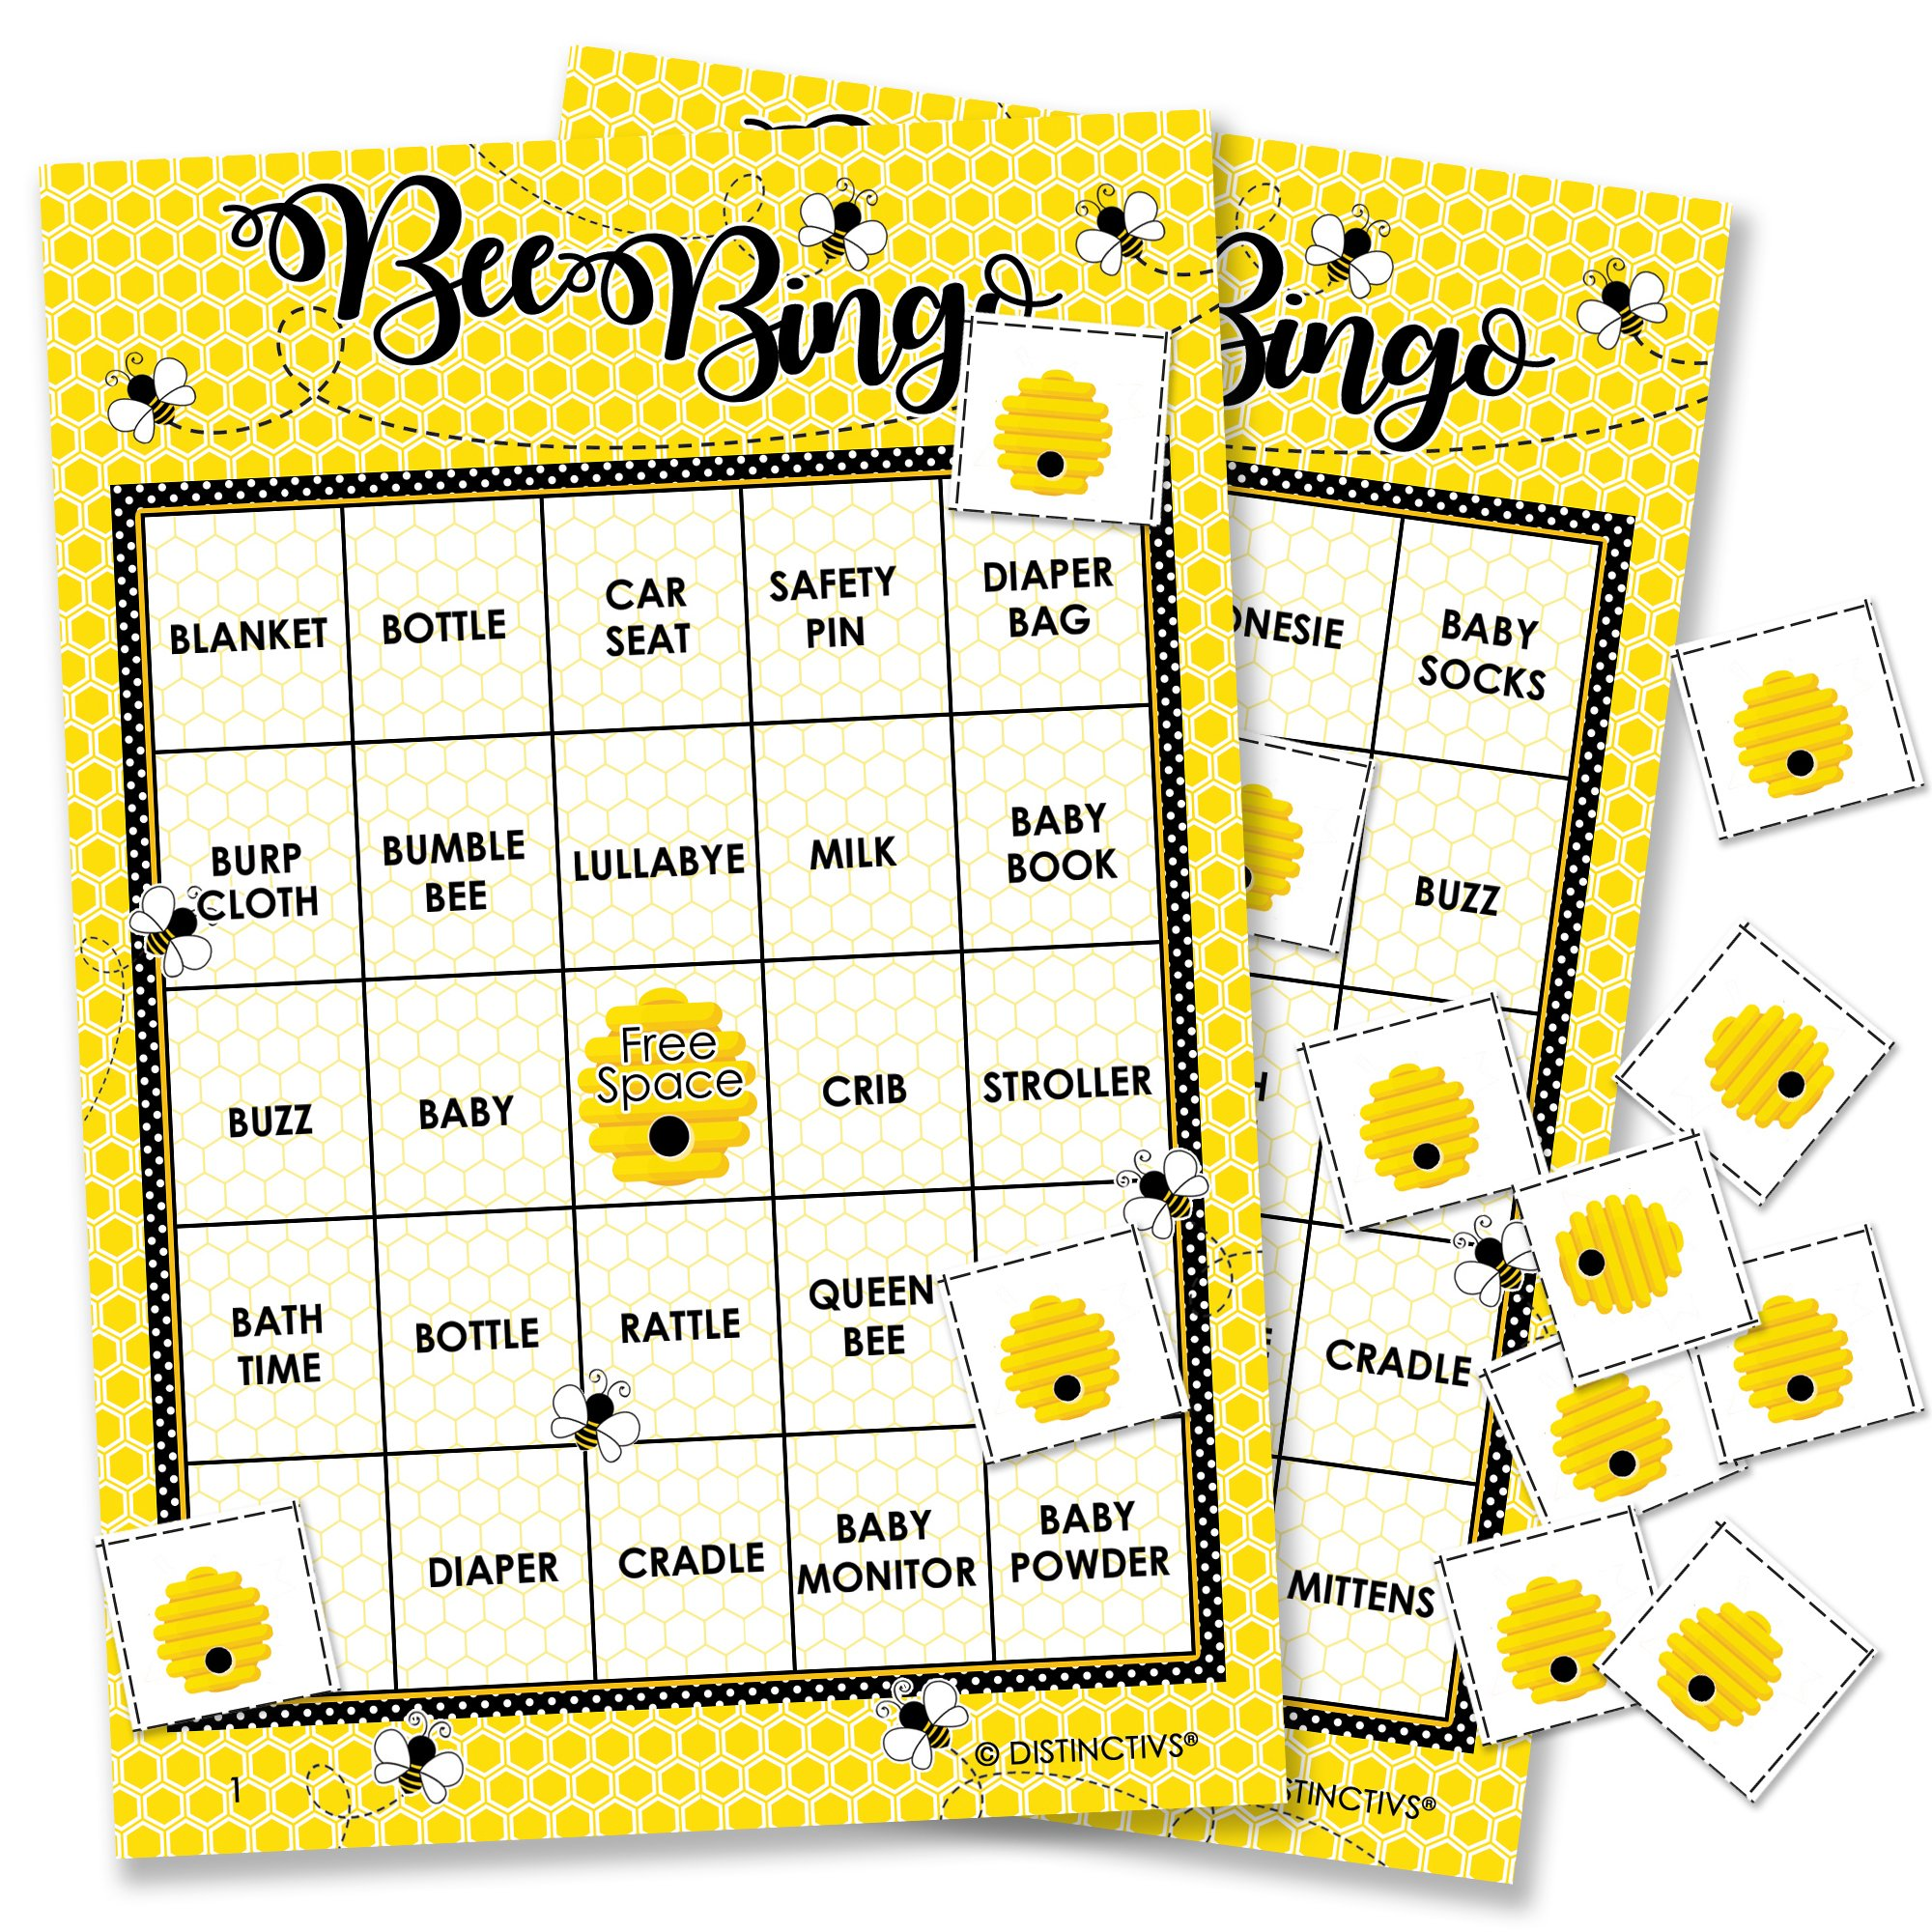 Bumble Bee Baby Bingo Game - 24 Guests by DISTINCTIVS